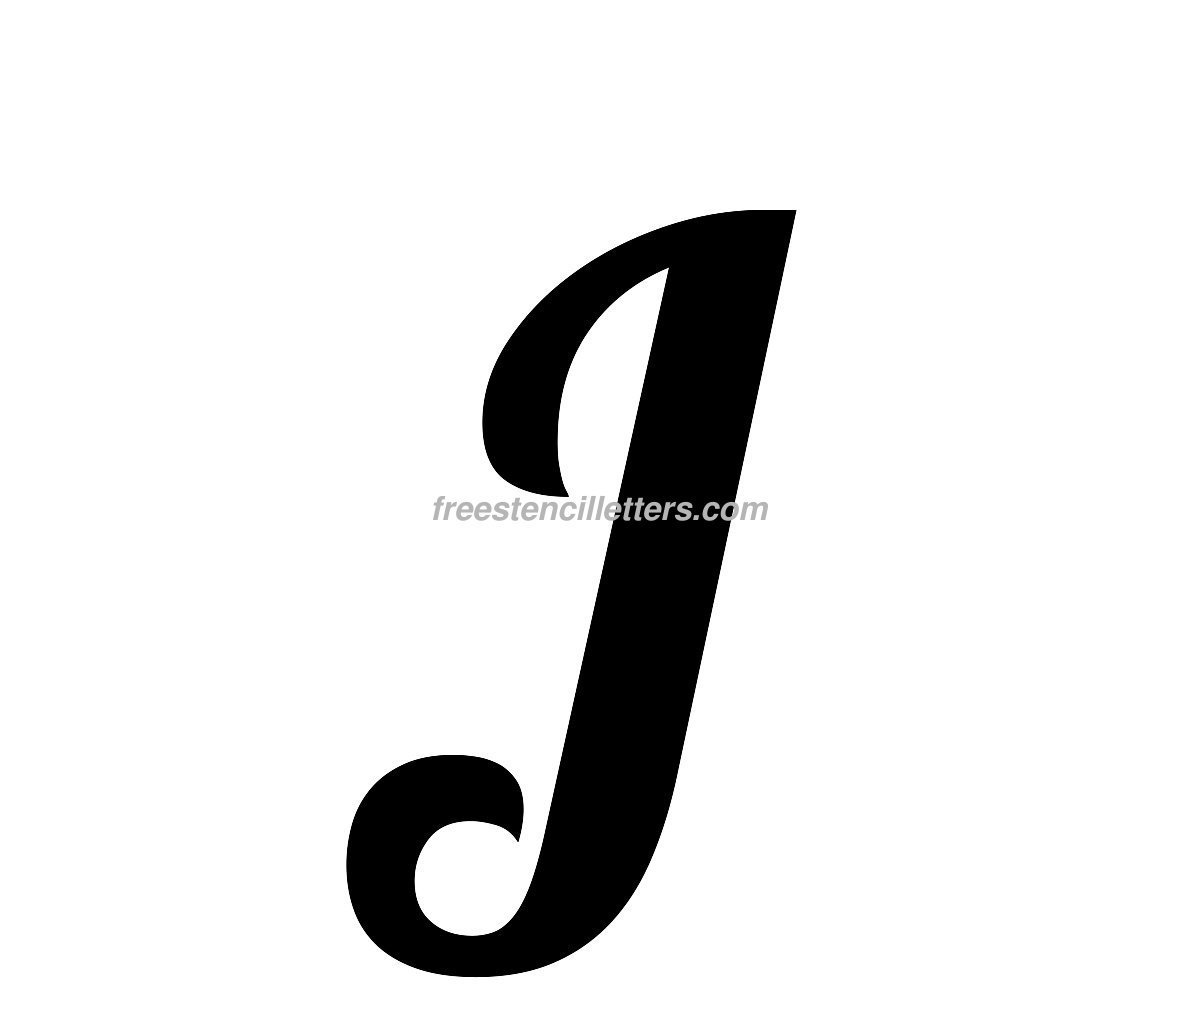 Download print j letter stencil to print and cut out